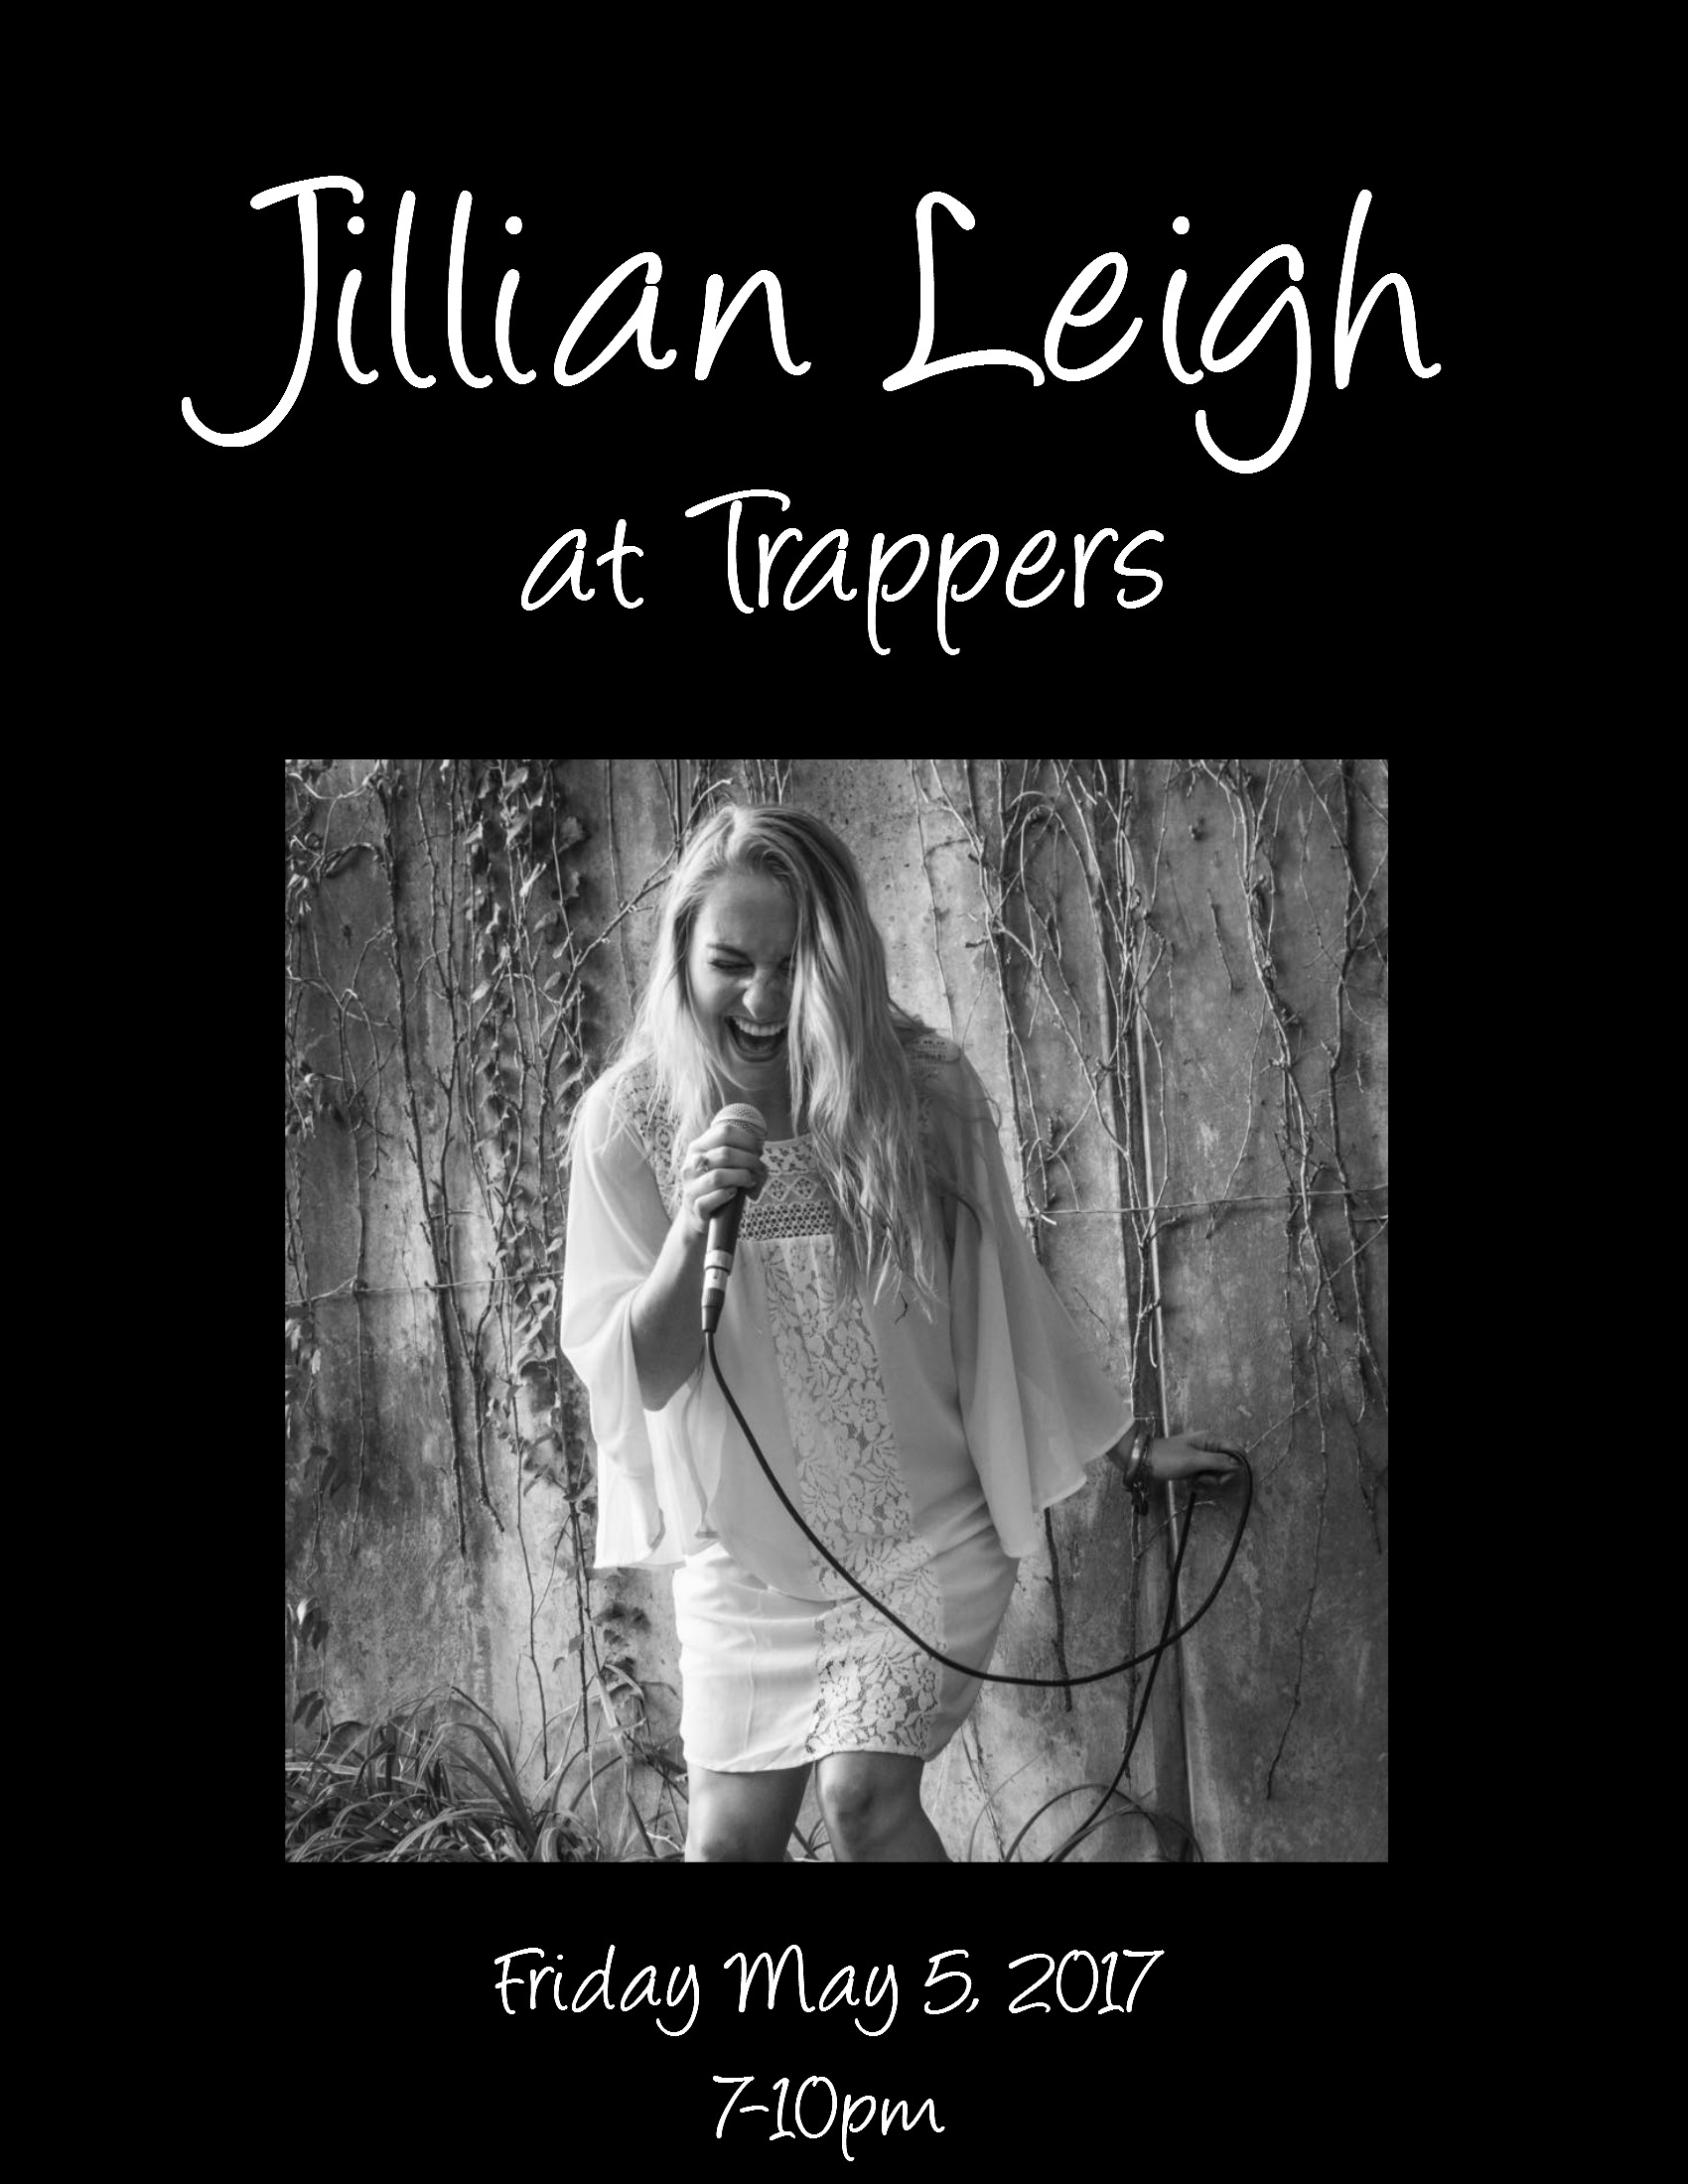 Jillian Leigh at Trappers